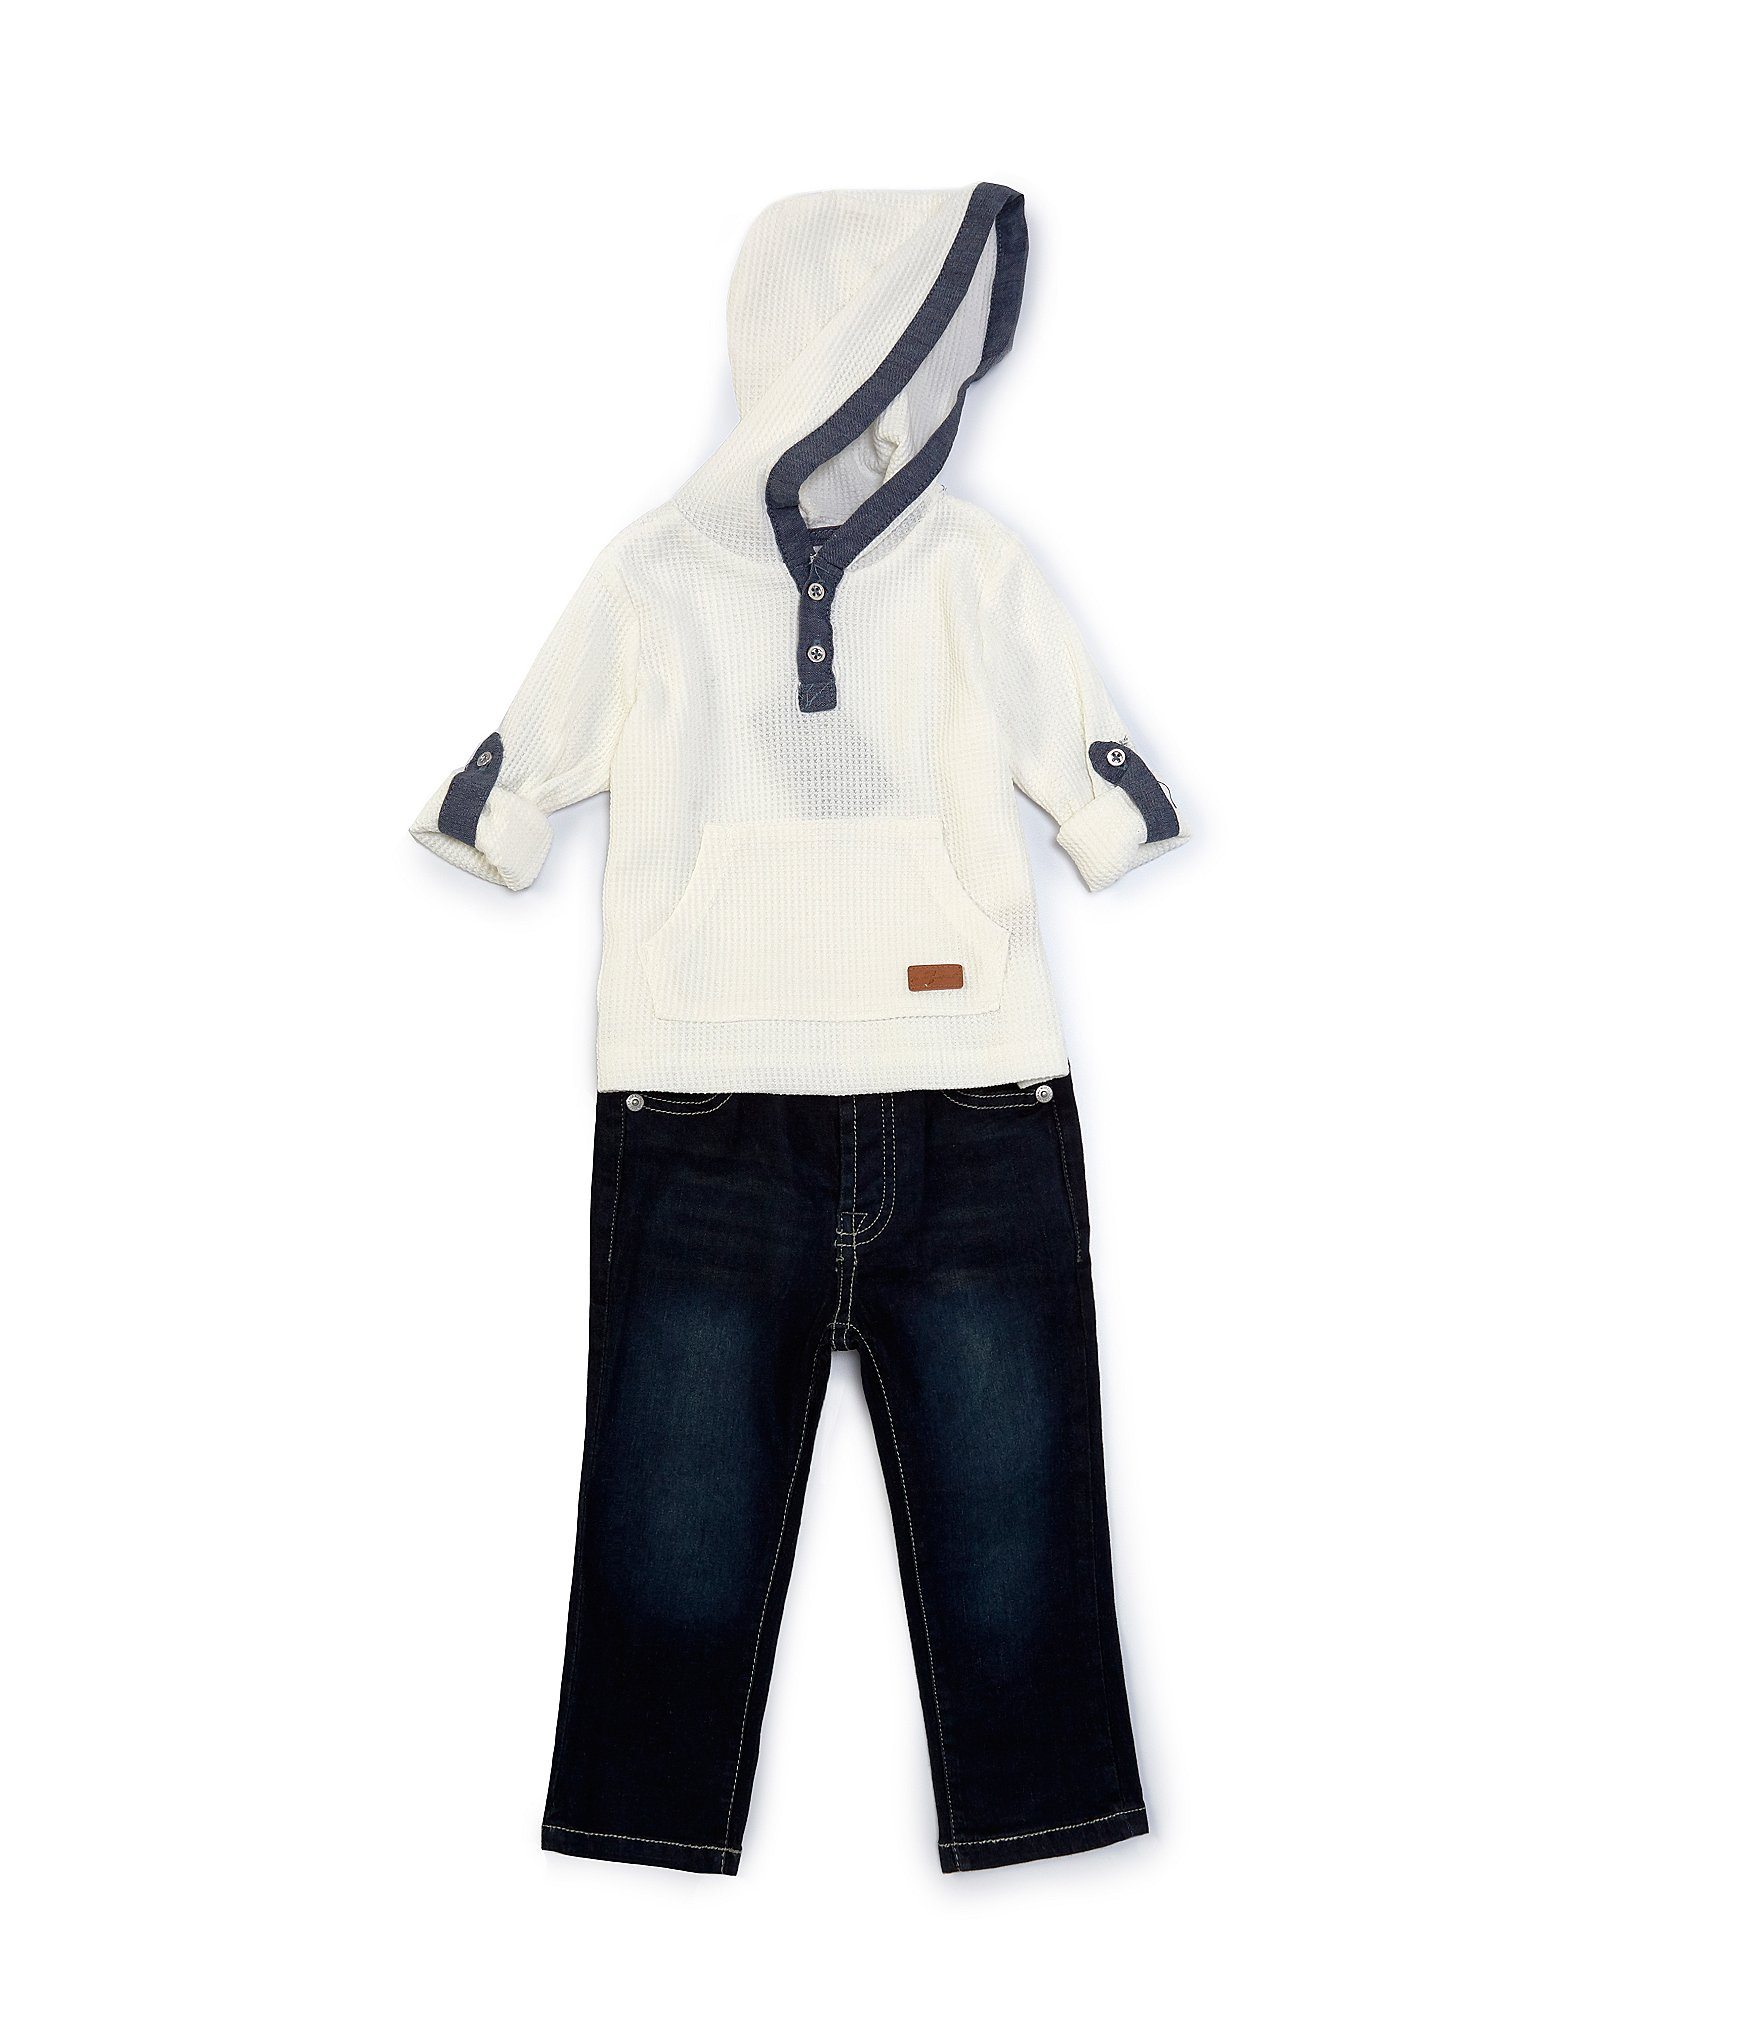 Hobart Paradoja Museo Guggenheim  7 for all mankind Baby Boys 12-24 Months Long-Sleeve Hooded Henley Tee & Denim  Jeans Set | Dillard's